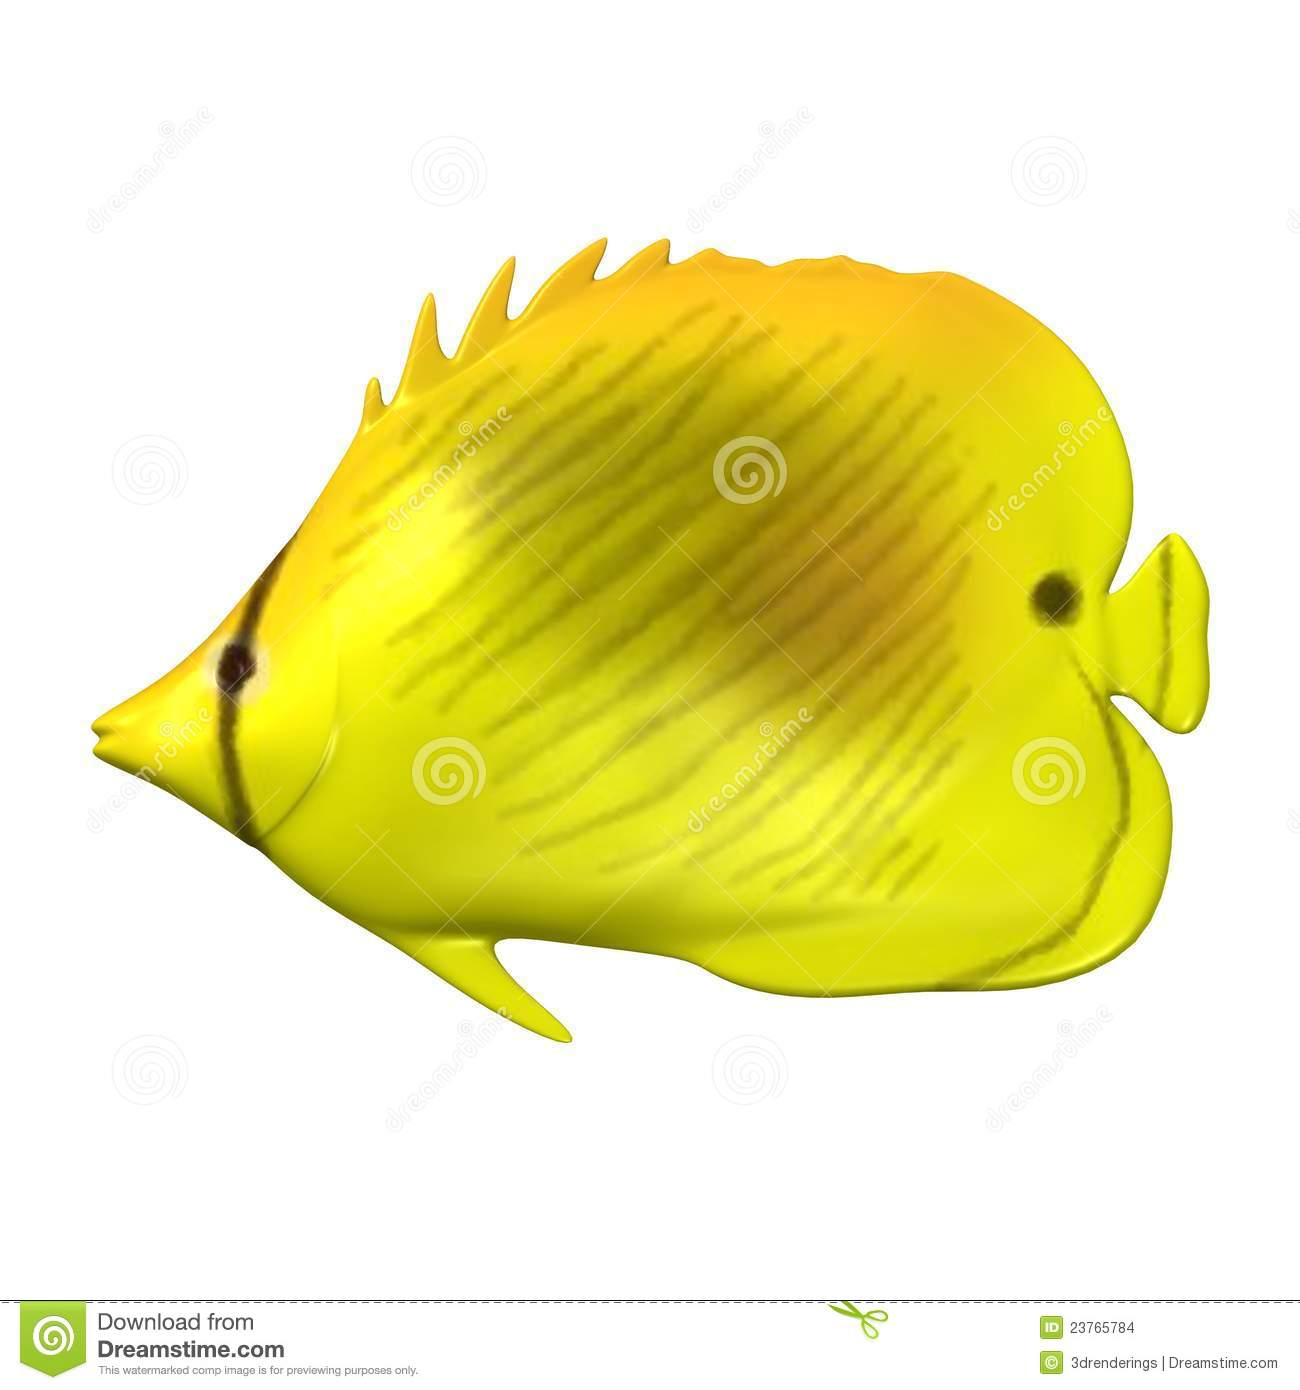 Yellow tropical fish stock images image 23765784 for Yellow tropical fish